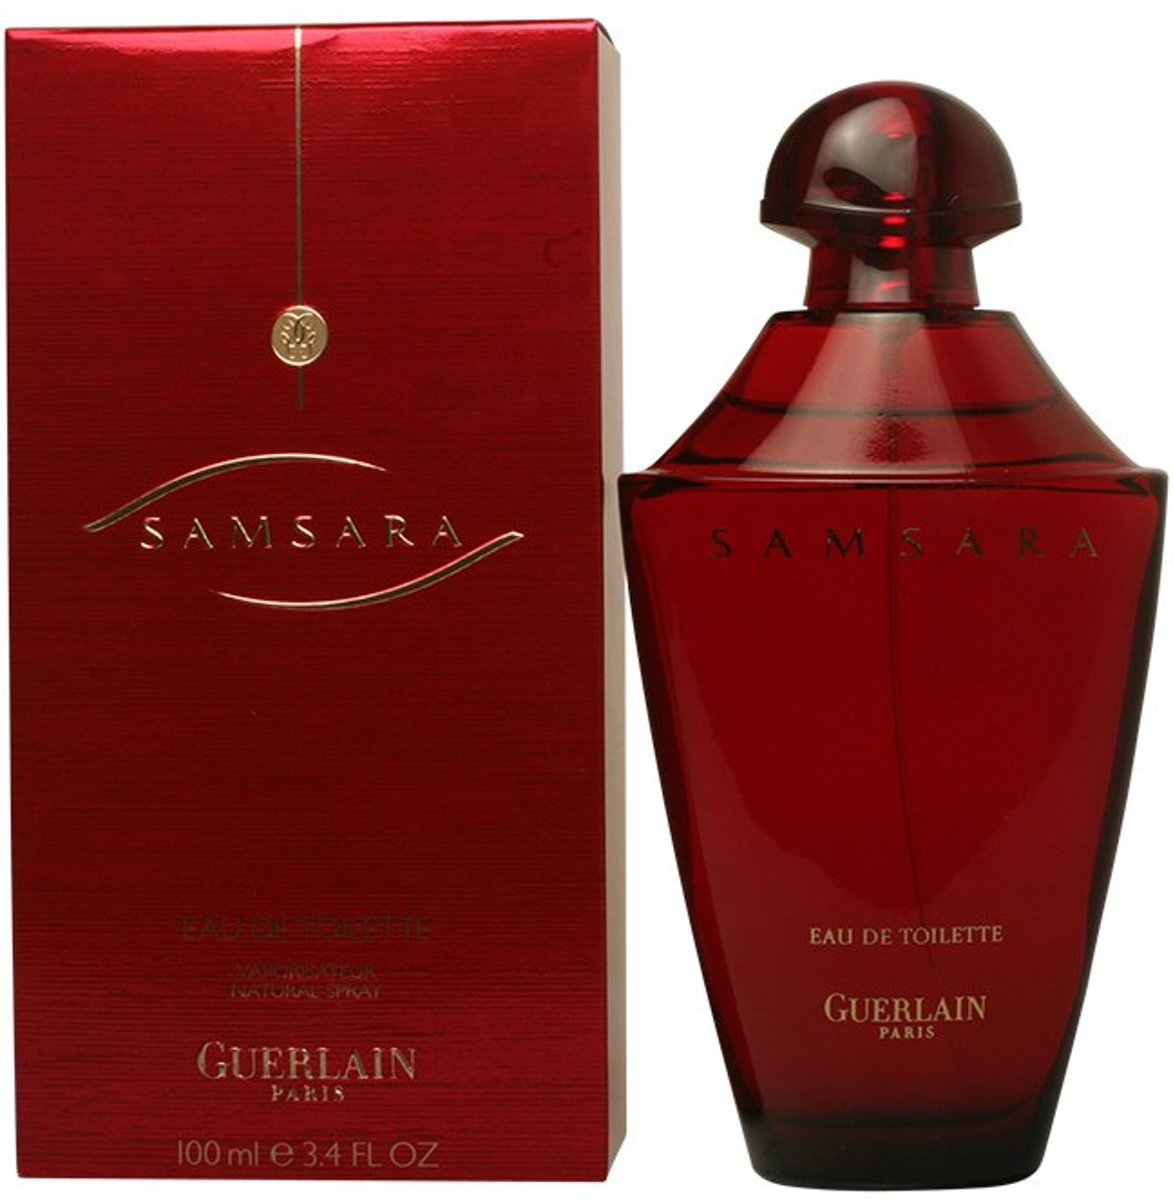 MULTI BUNDEL 2 stuks SAMSARA Eau de Toilette Spray 100 ml